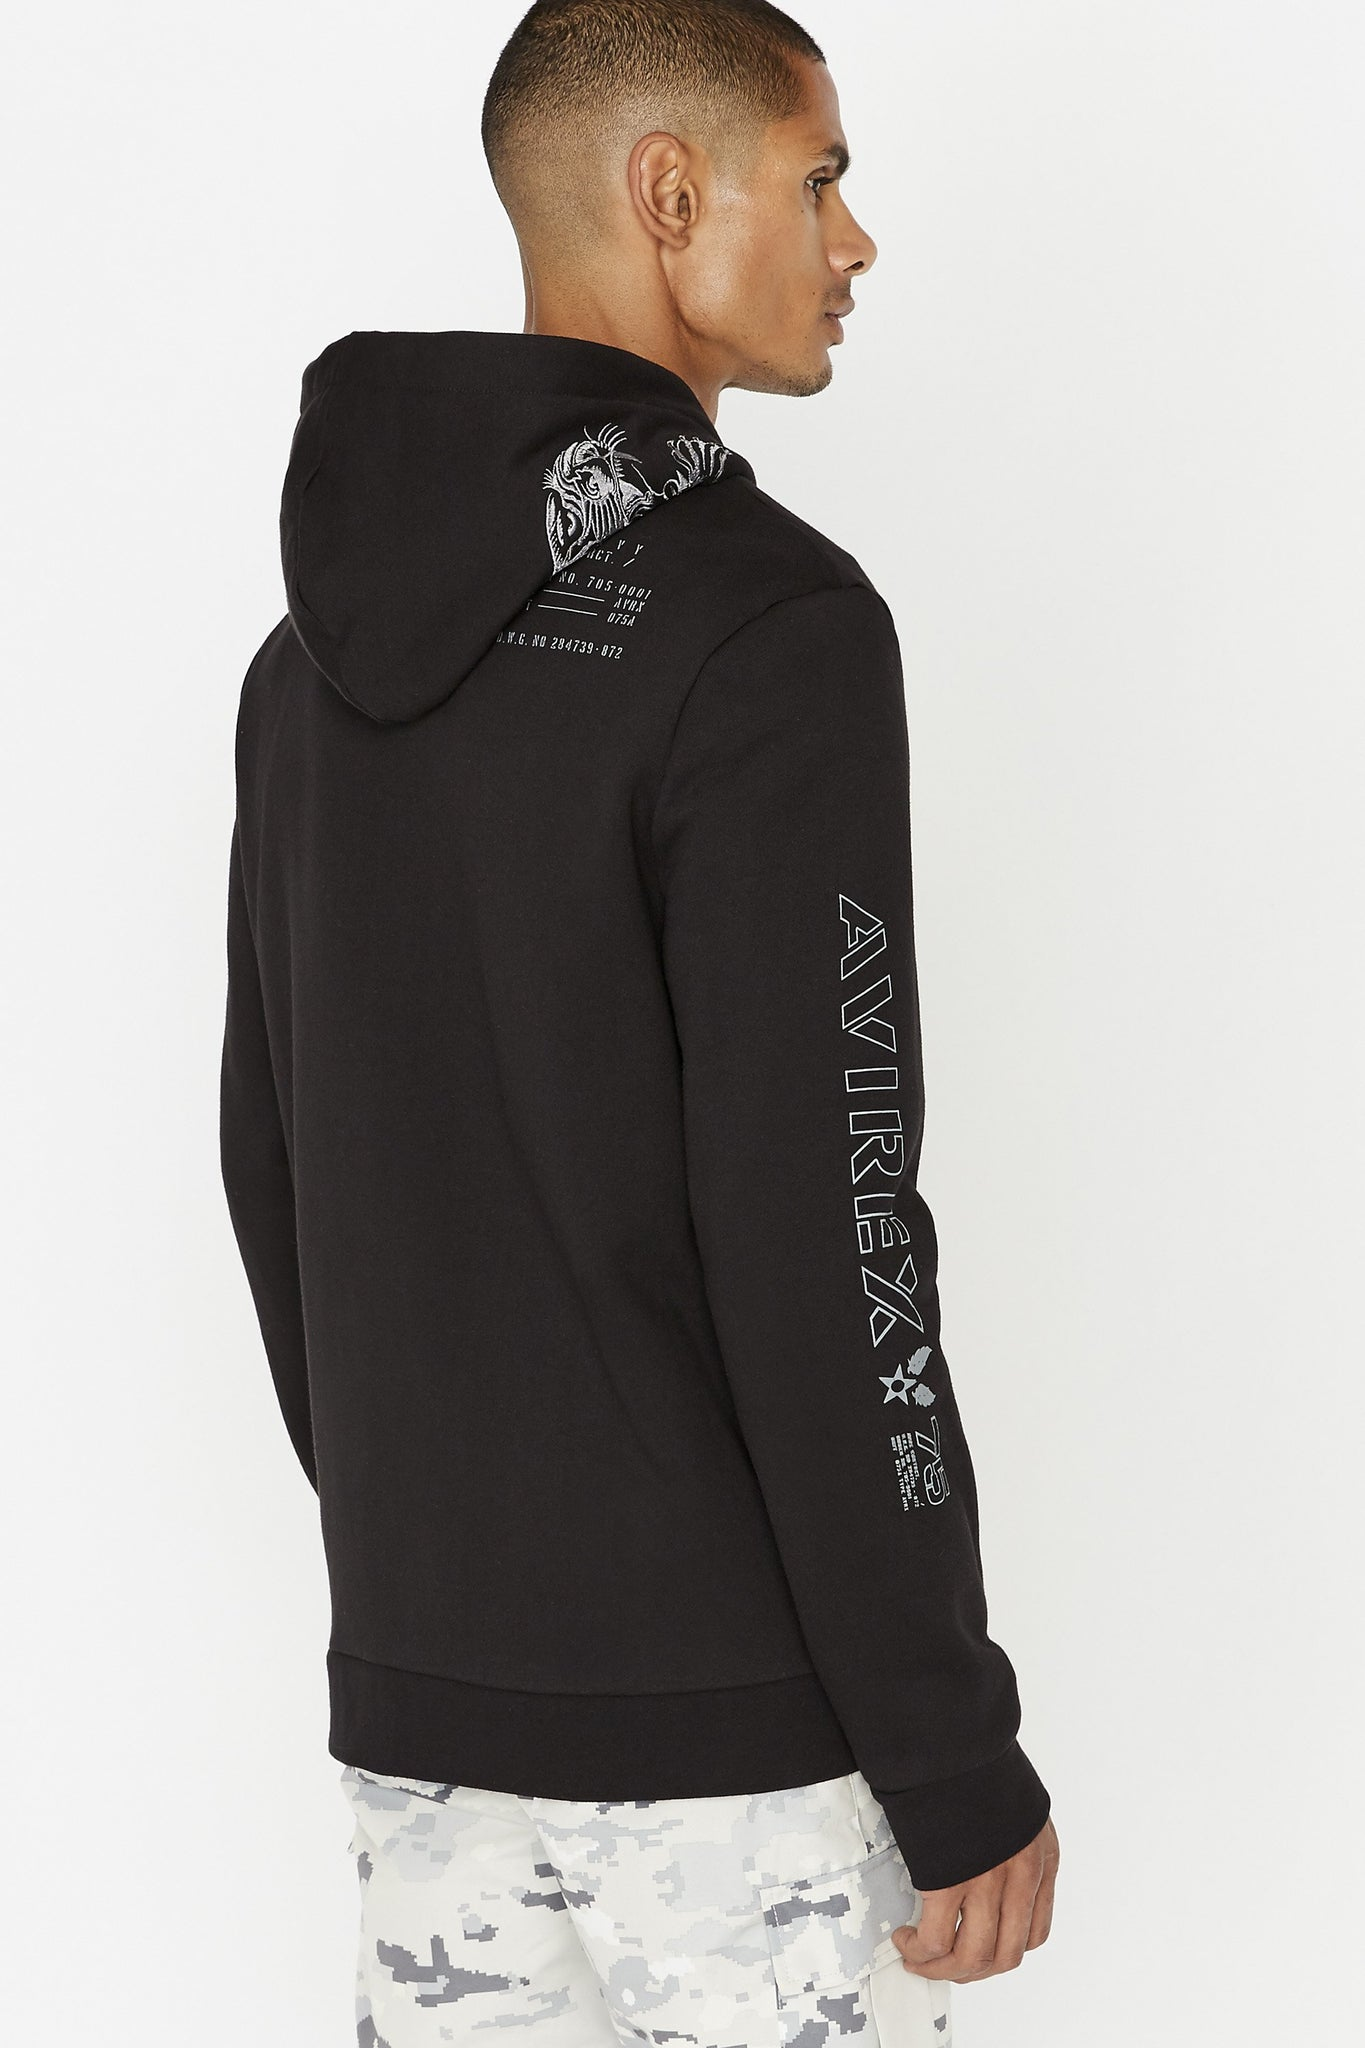 Side view of men wearing a black long sleeve sweatshirt with embroidered tiger on hood and print on back shoulder and on the right sleeve